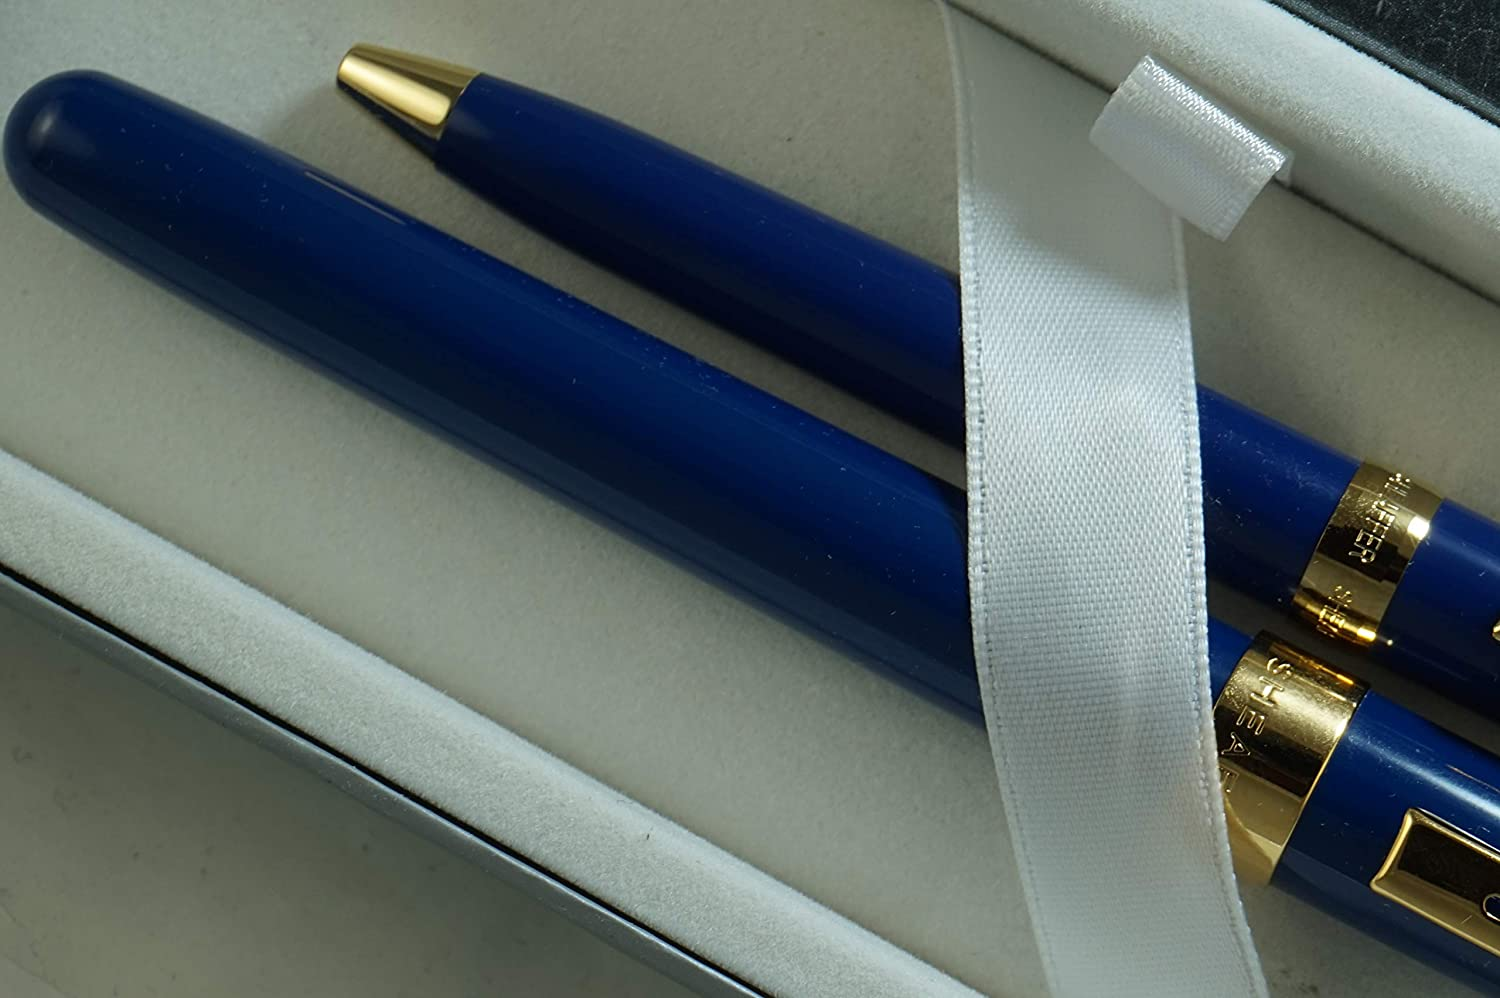 Ballpoint Pen /& Journal Gift Set Sheaffer Executive Companion Cobalt Blue Lacquer Signature Prelude Collection with 22KT Rose Gold appointments,Solid and Stamped 14KT Gold Medium Nib Fountain Pen